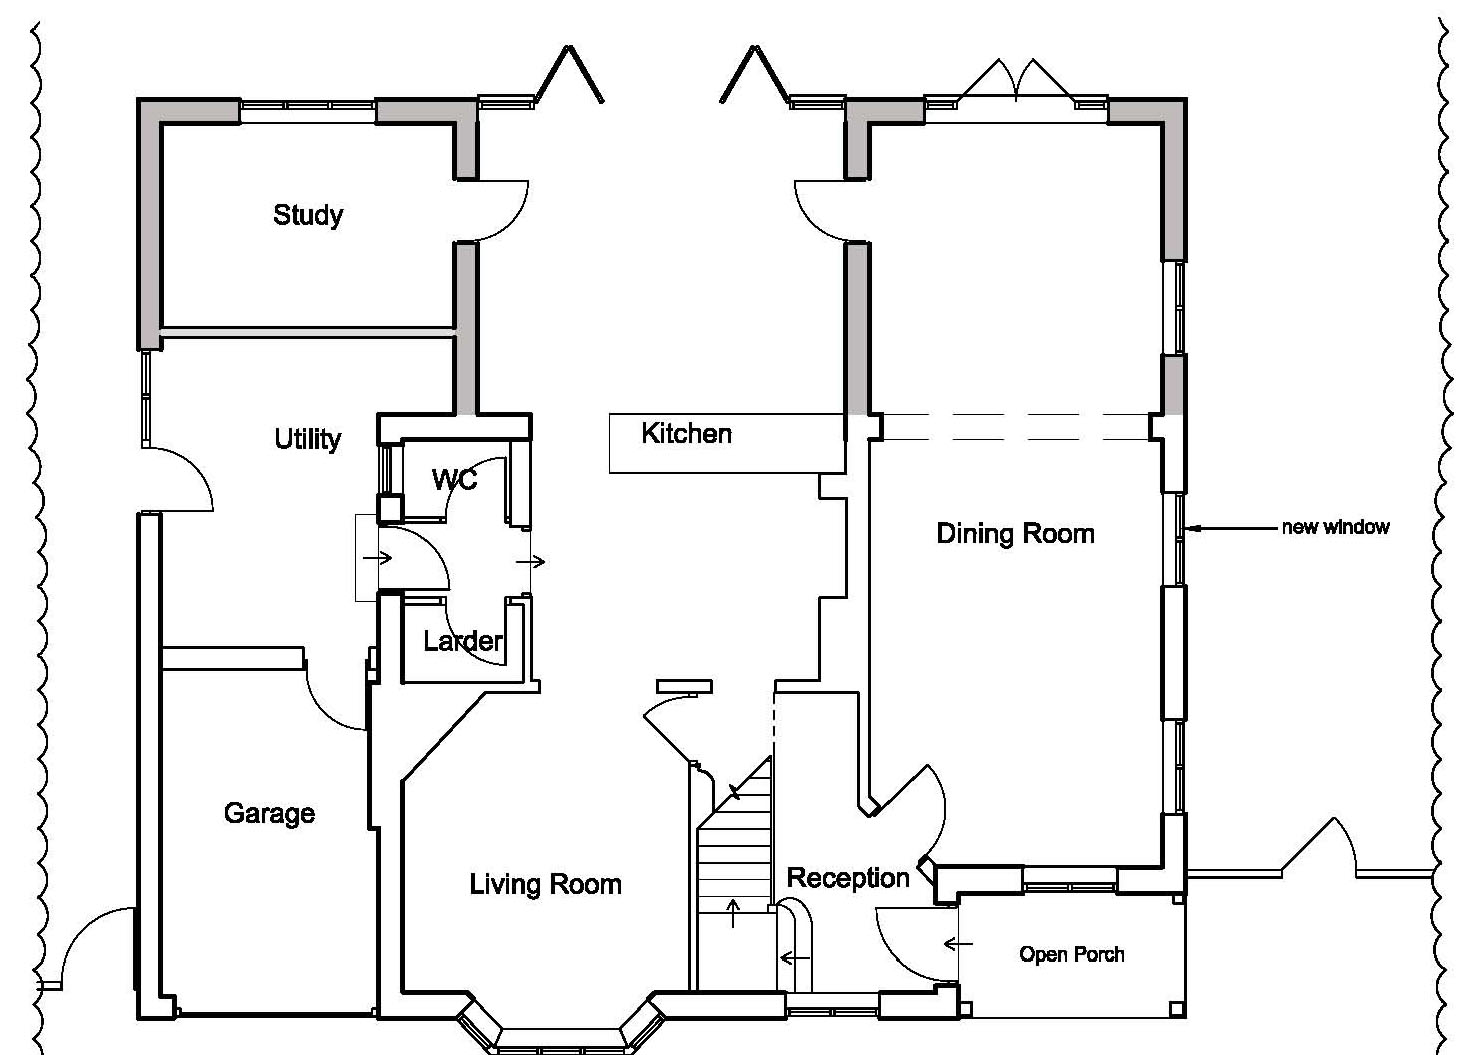 As Proposed Floor Plan by CPA Design